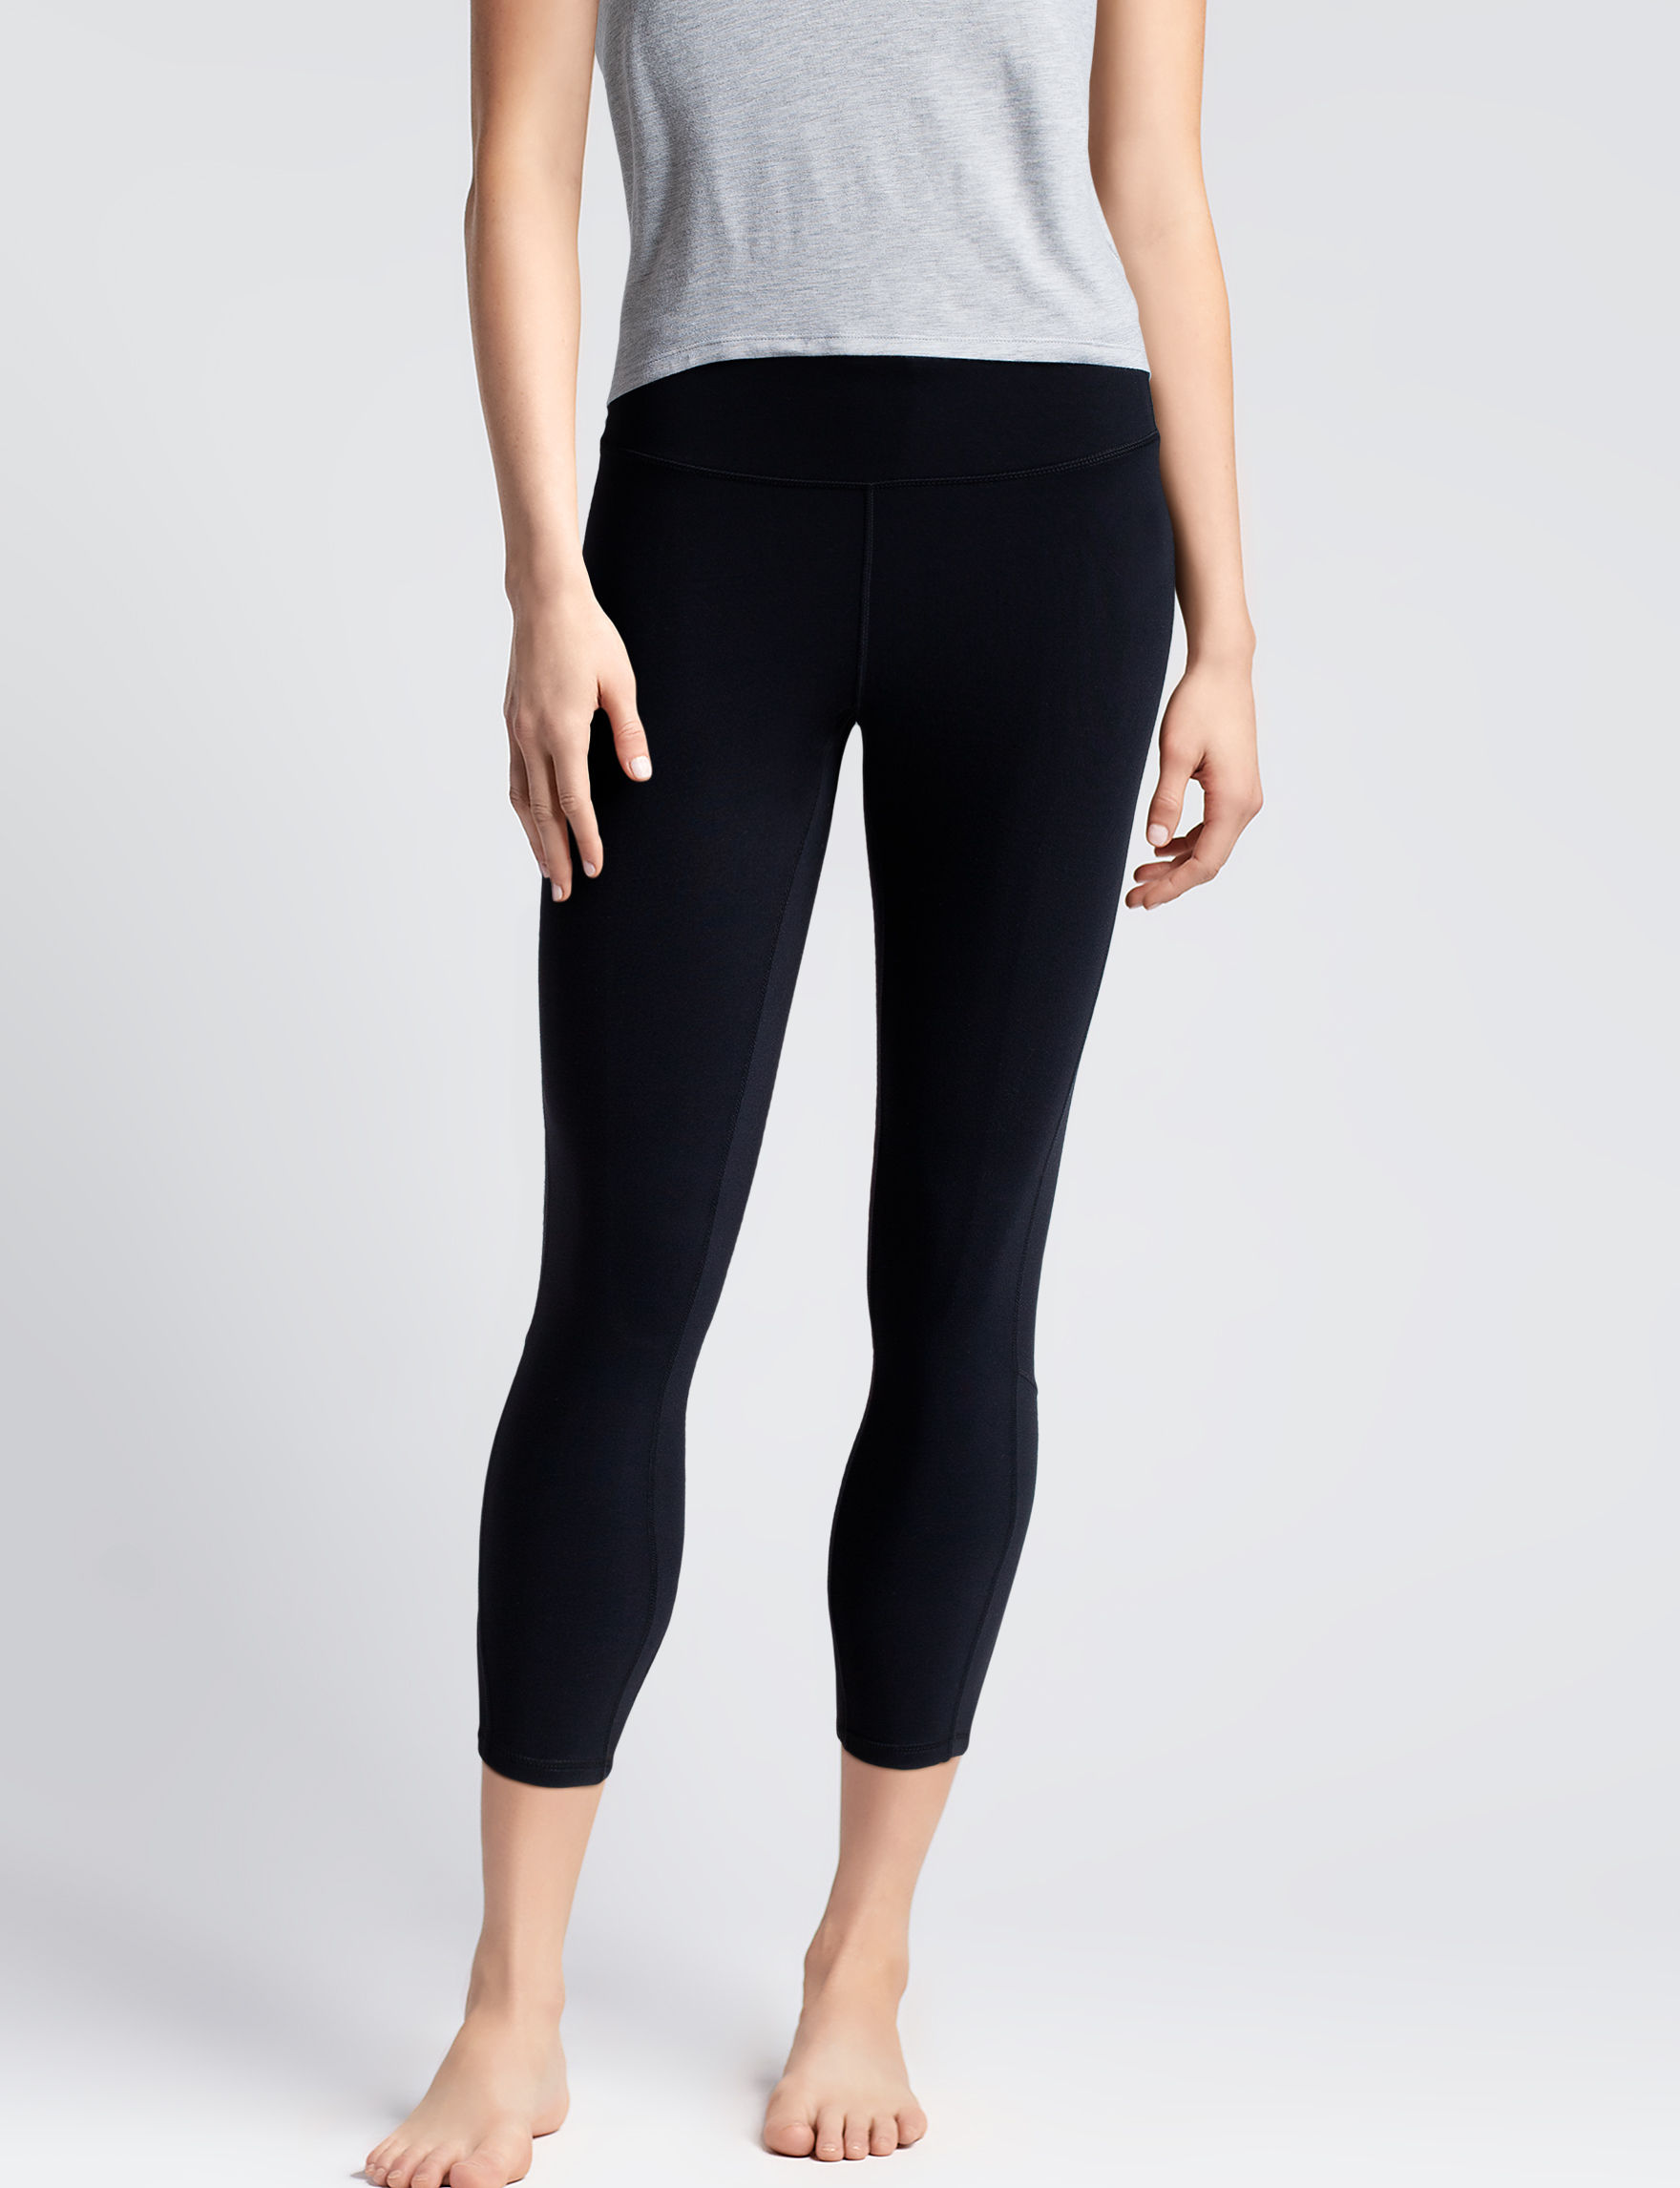 Gaiam Black Leggings Stretch